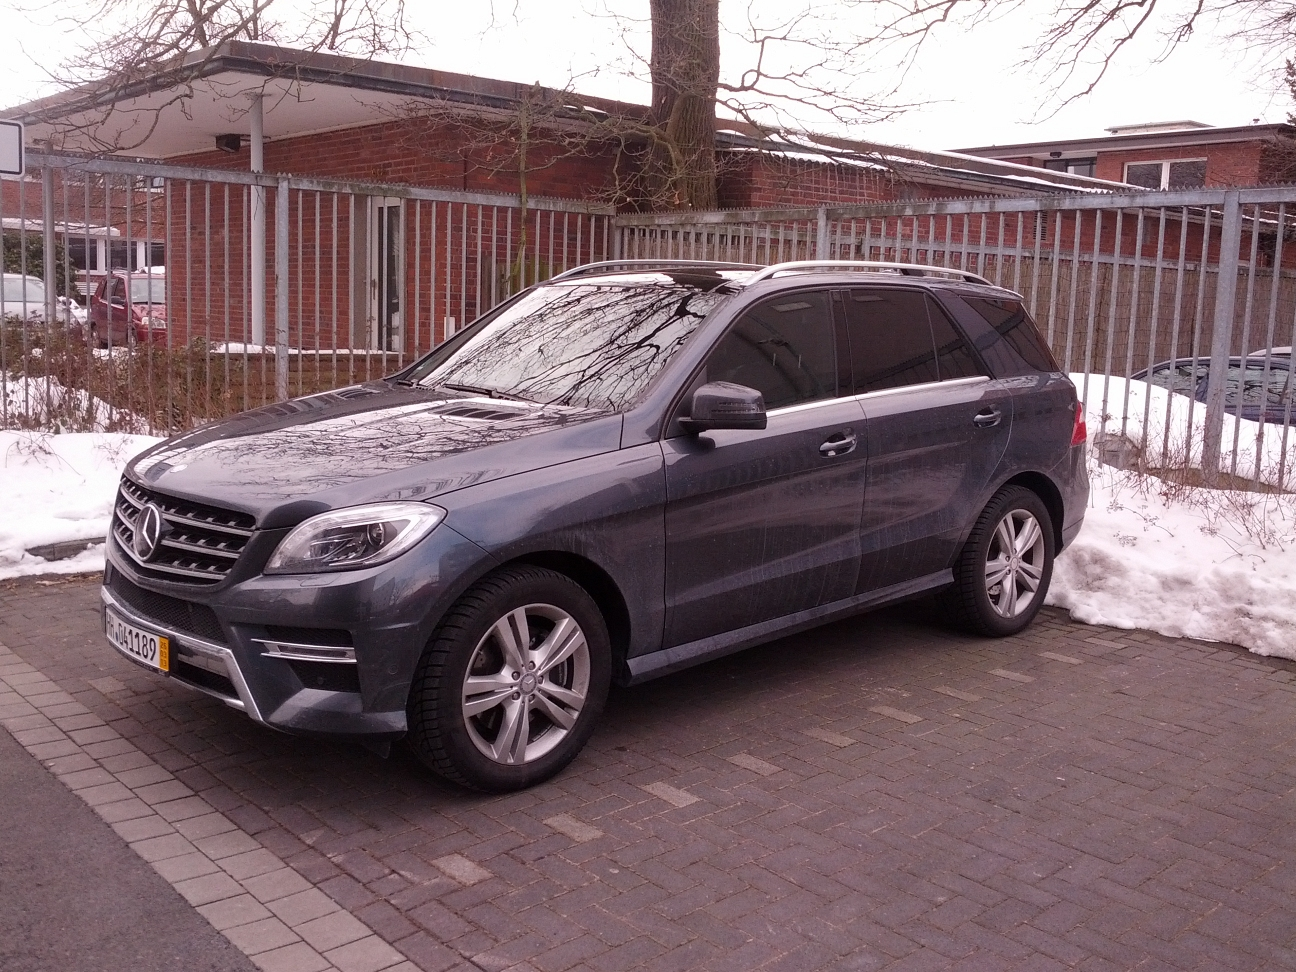 2013 Mercedes-Benz ML350 CDI Avantgarde